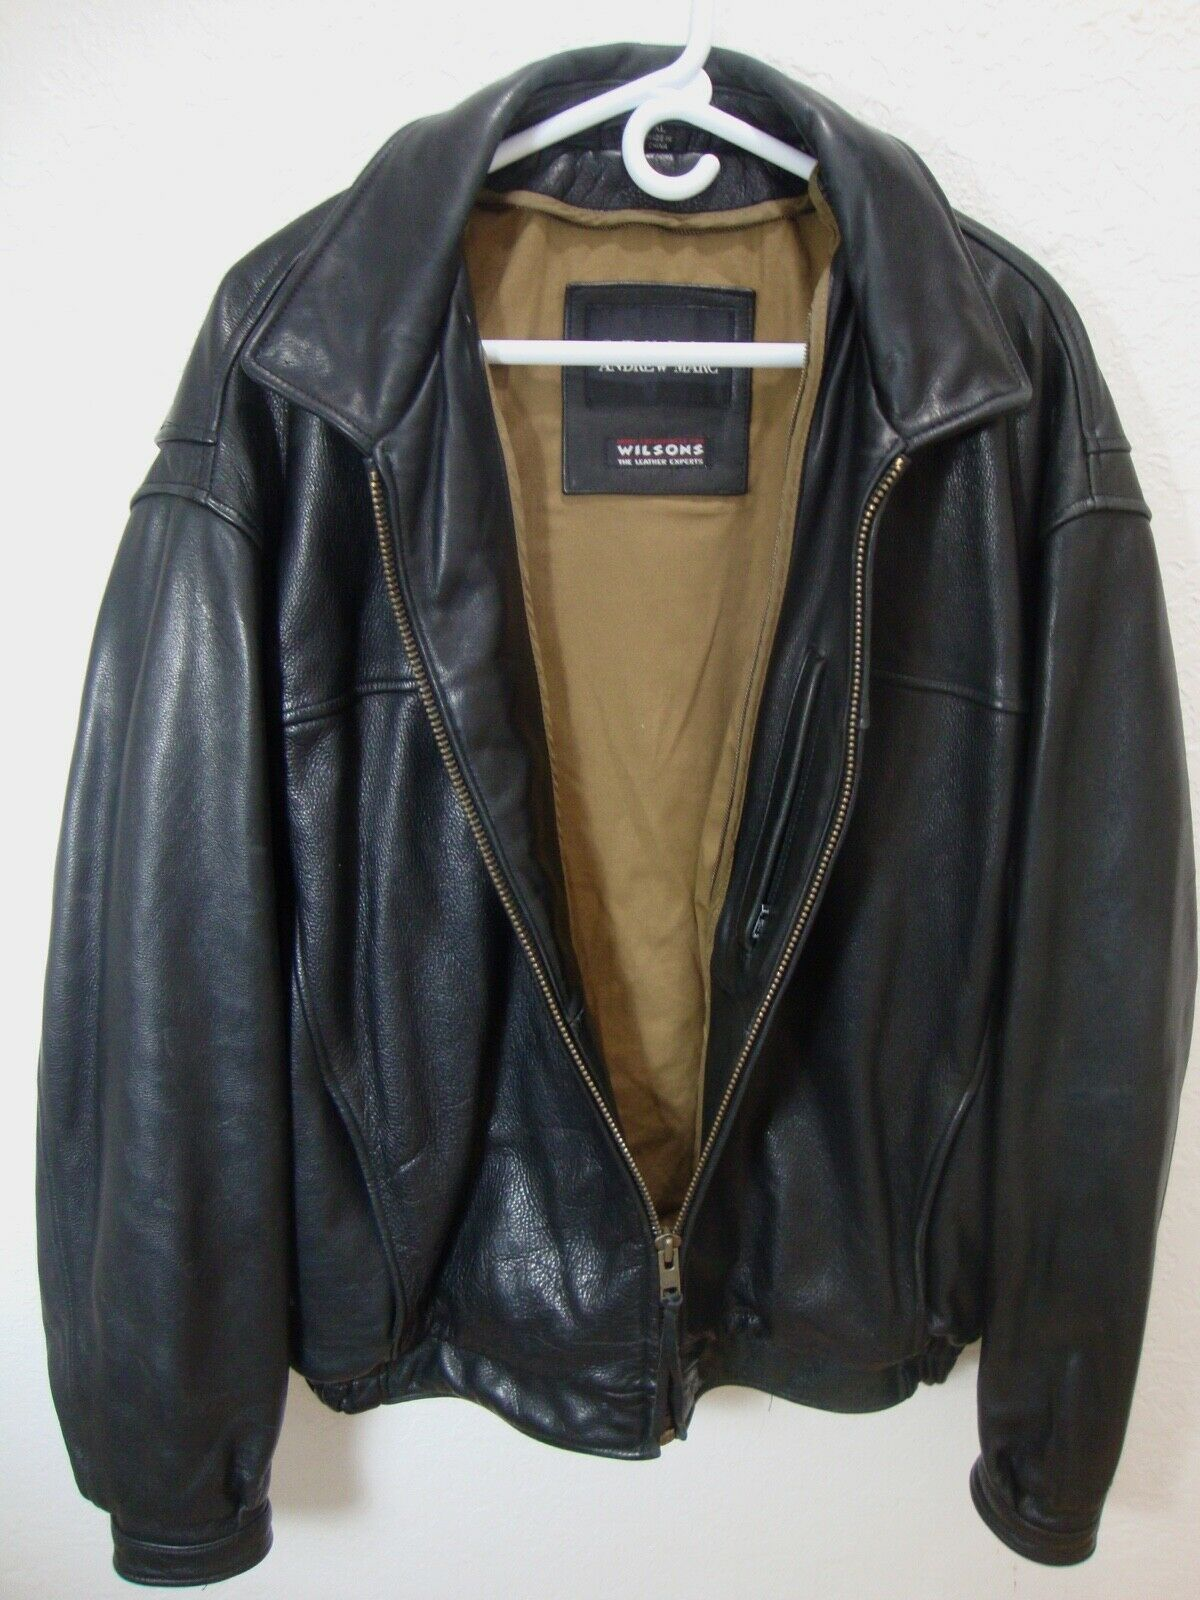 ANDREW MARC Black Leather Bomber Jacket Distressed Lined Zip Up Motorcycle XL image 3